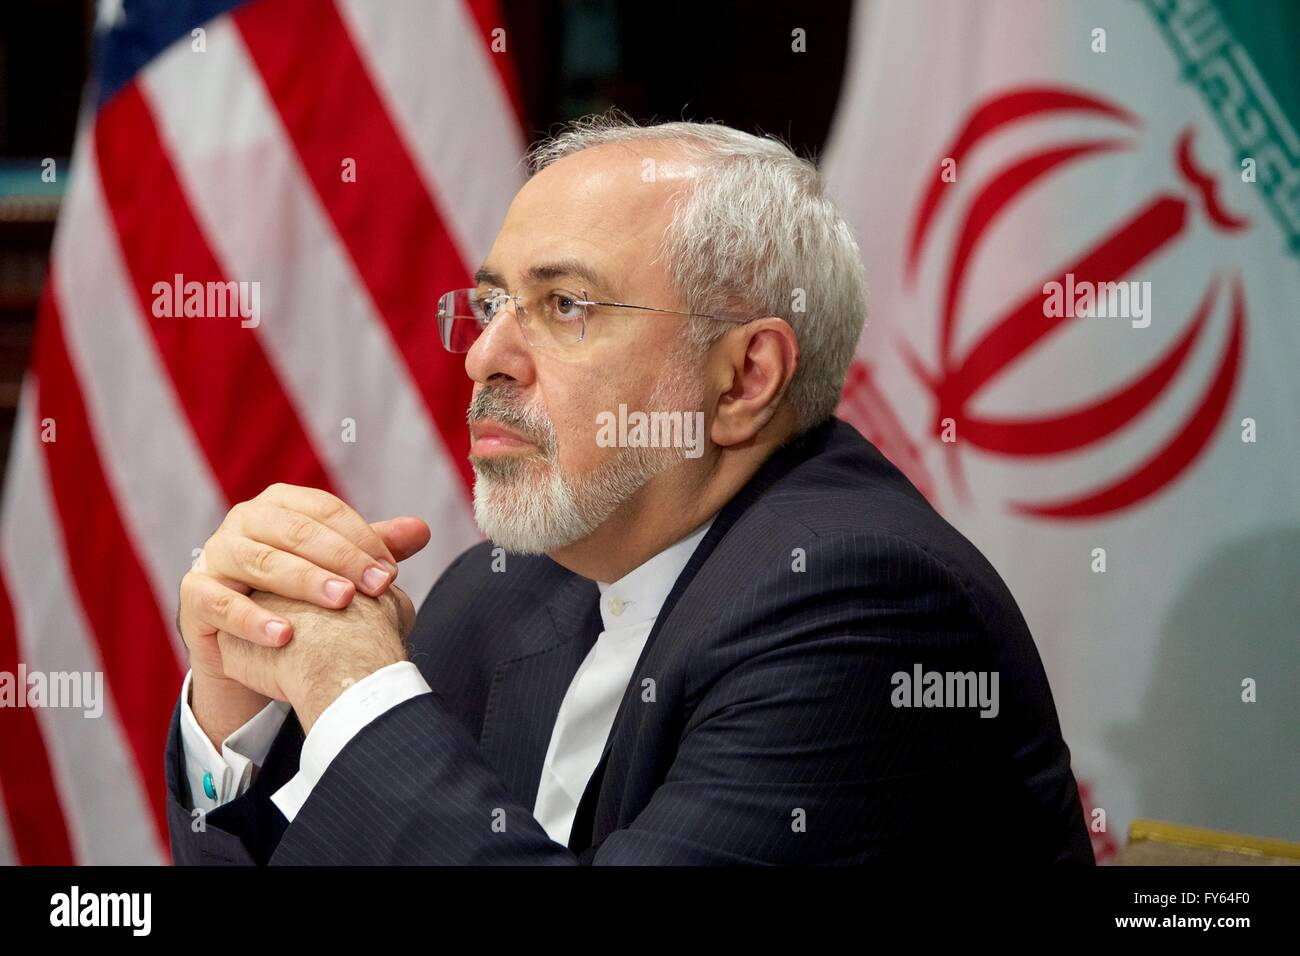 New York, USA. 22nd Apr, 2016. Iranian Foreign Minister Javad Zarif during a bilateral meeting with U.S. Secretary Stock Photo